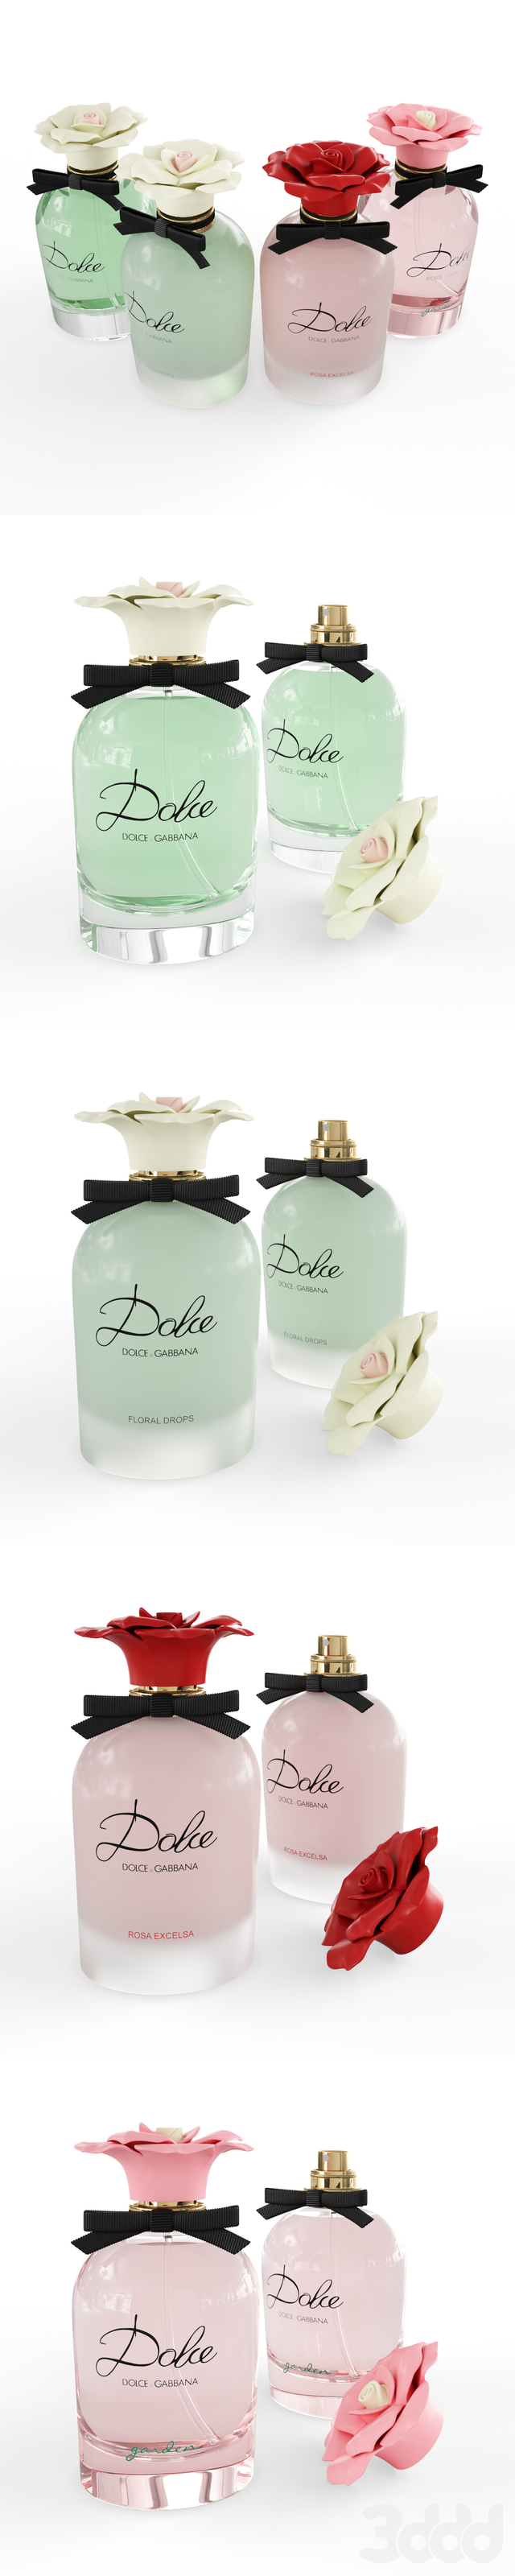 DOLCE & GABBANA Dolce Collection